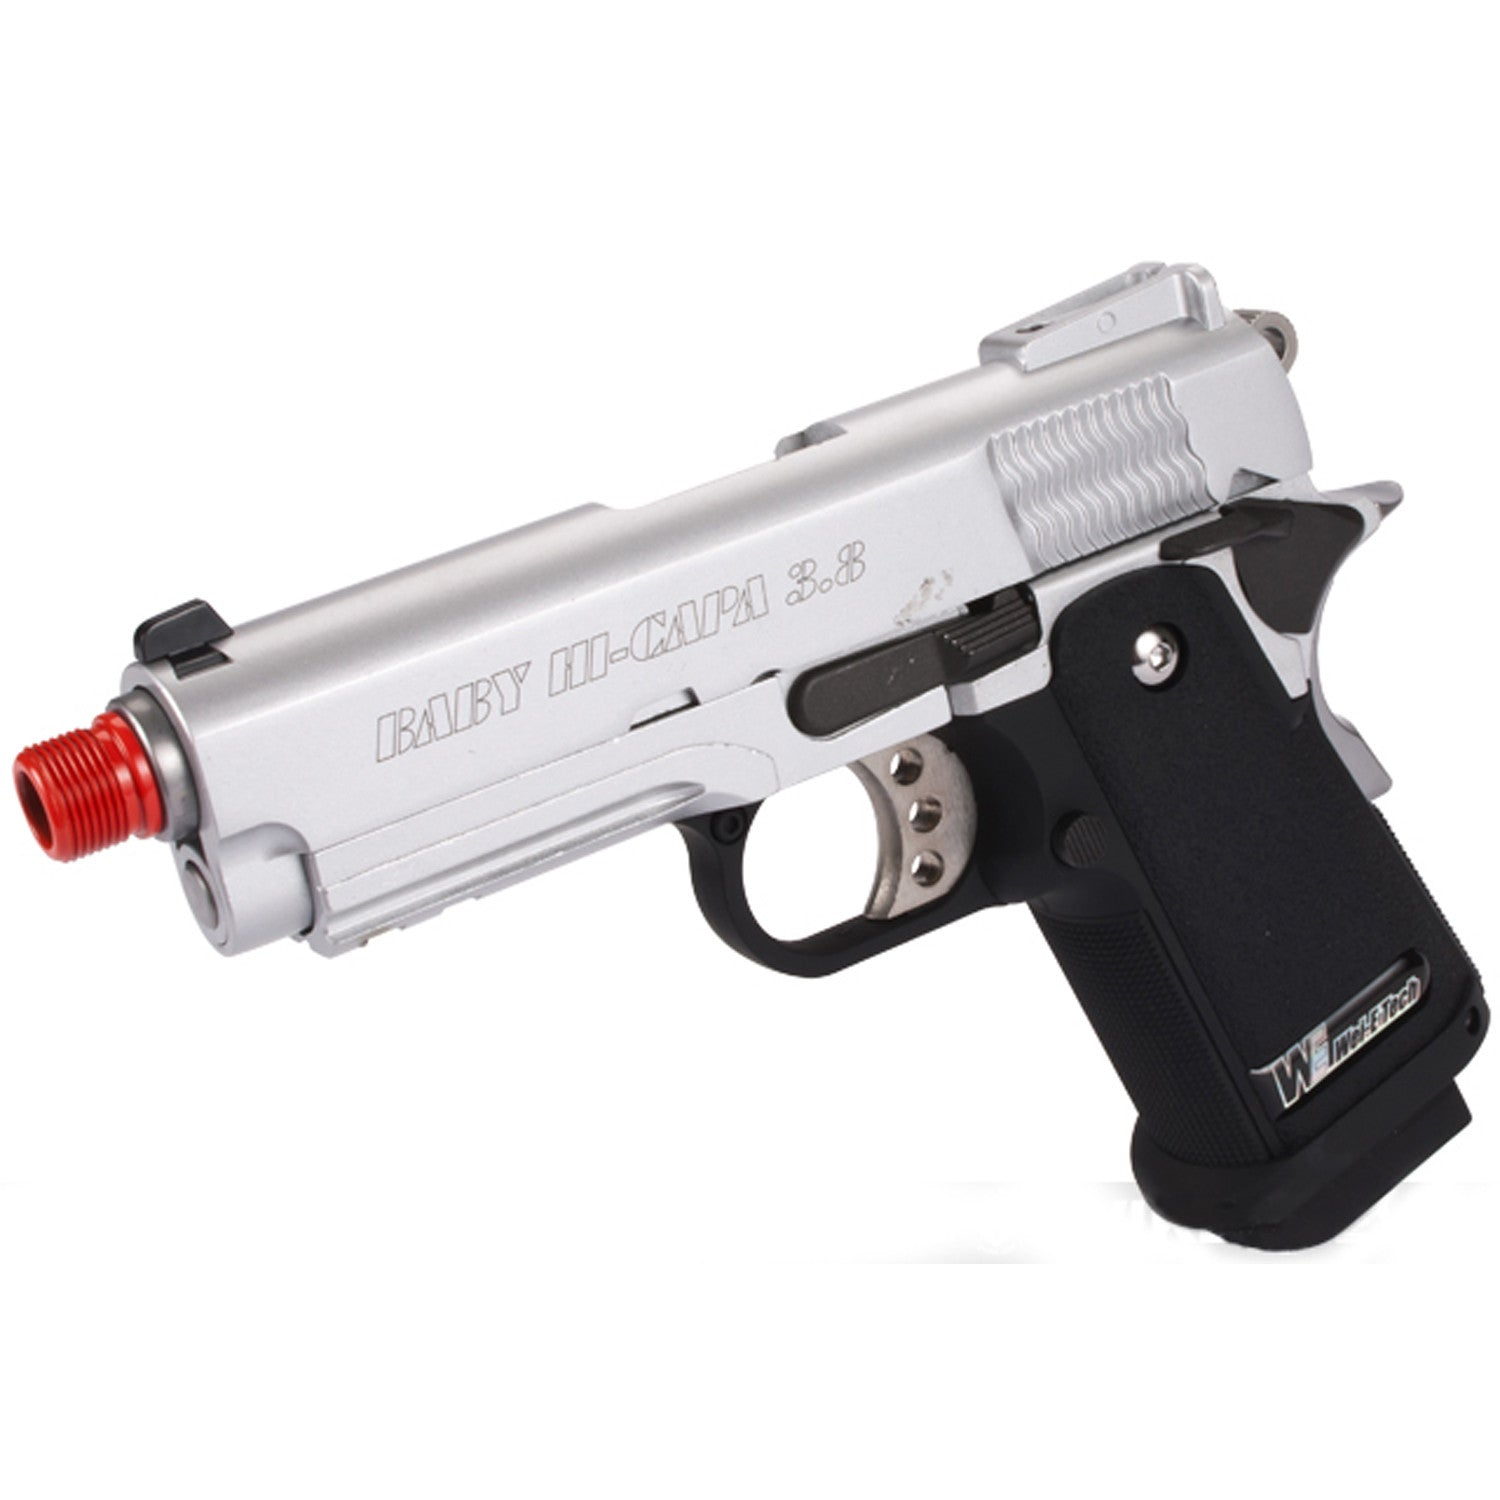 WE 1911 Baby Hi-Capa 3.8 Silver - Gas Blowback Full Metal 24 Round Mag Muzzle Velocity 330FPS Manufactured by WE